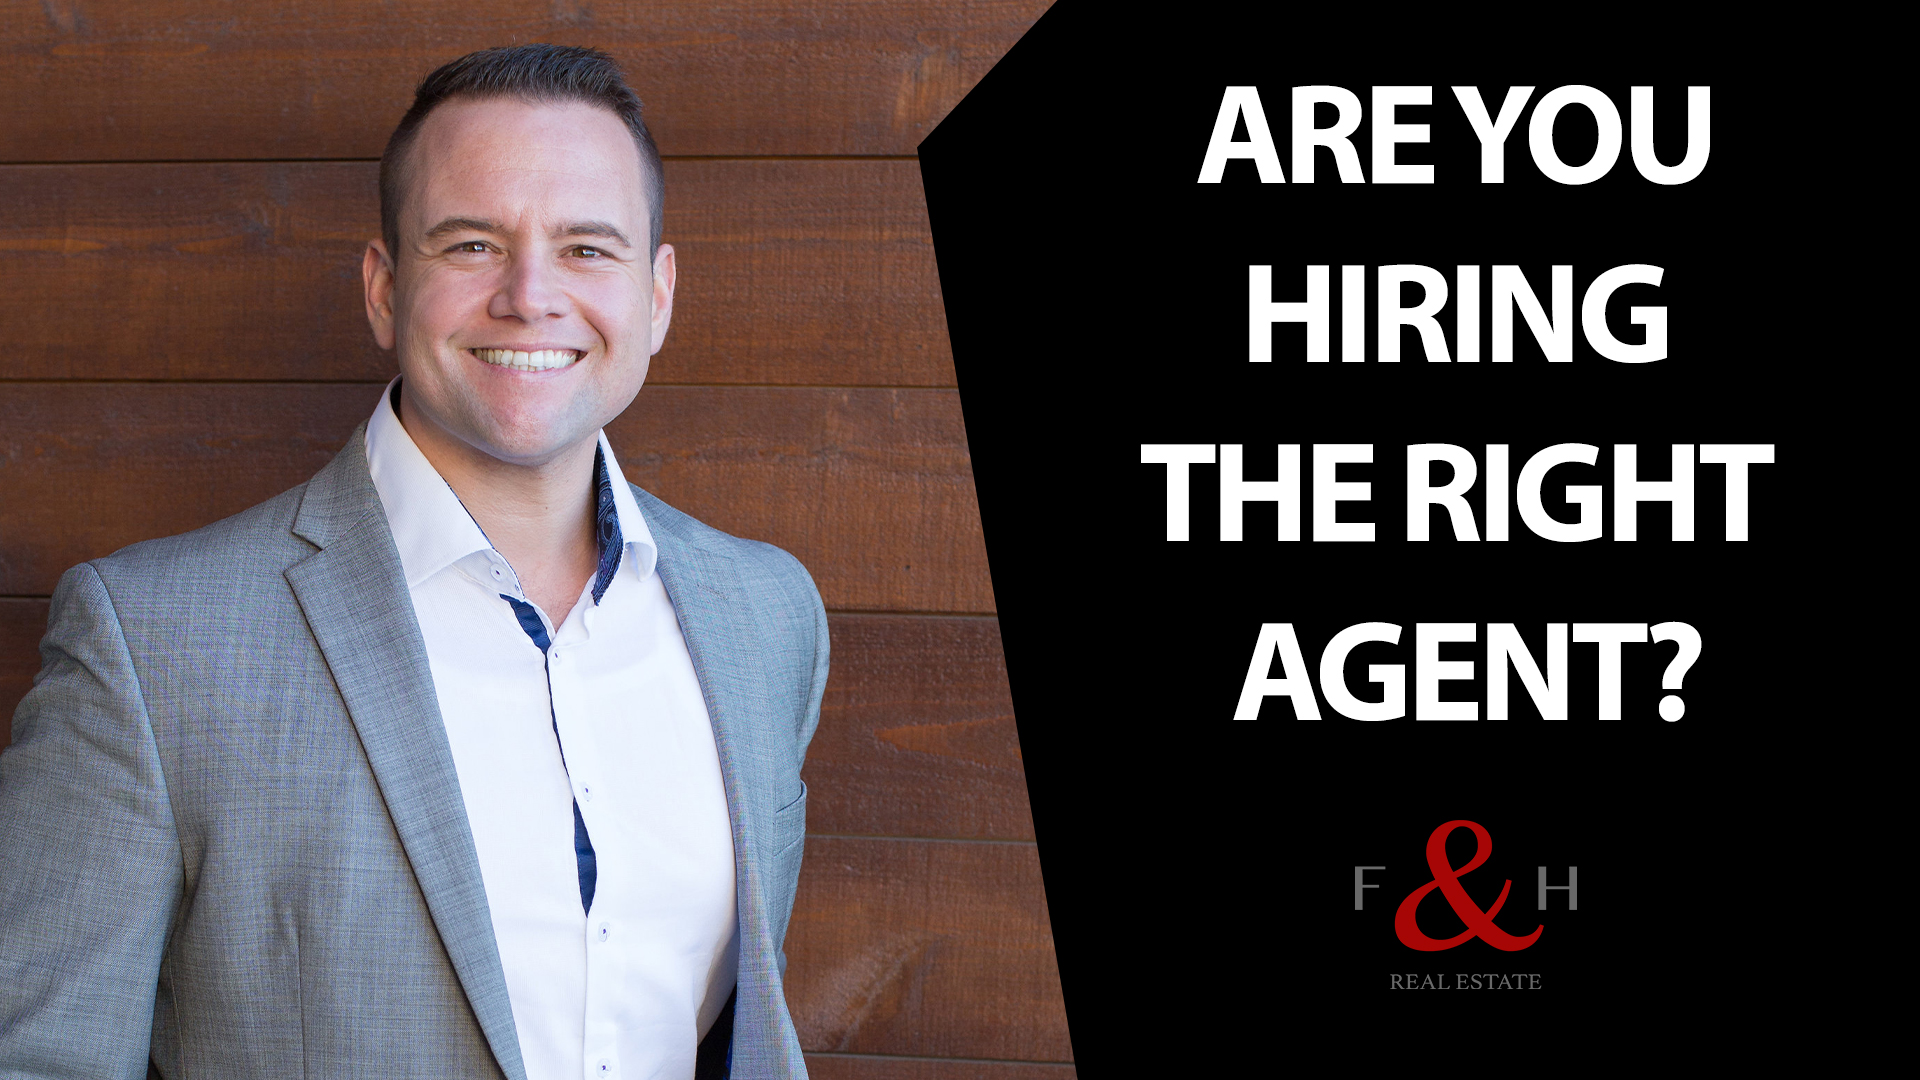 How Do You Know You're Hiring the Right Person to Sell Your House?